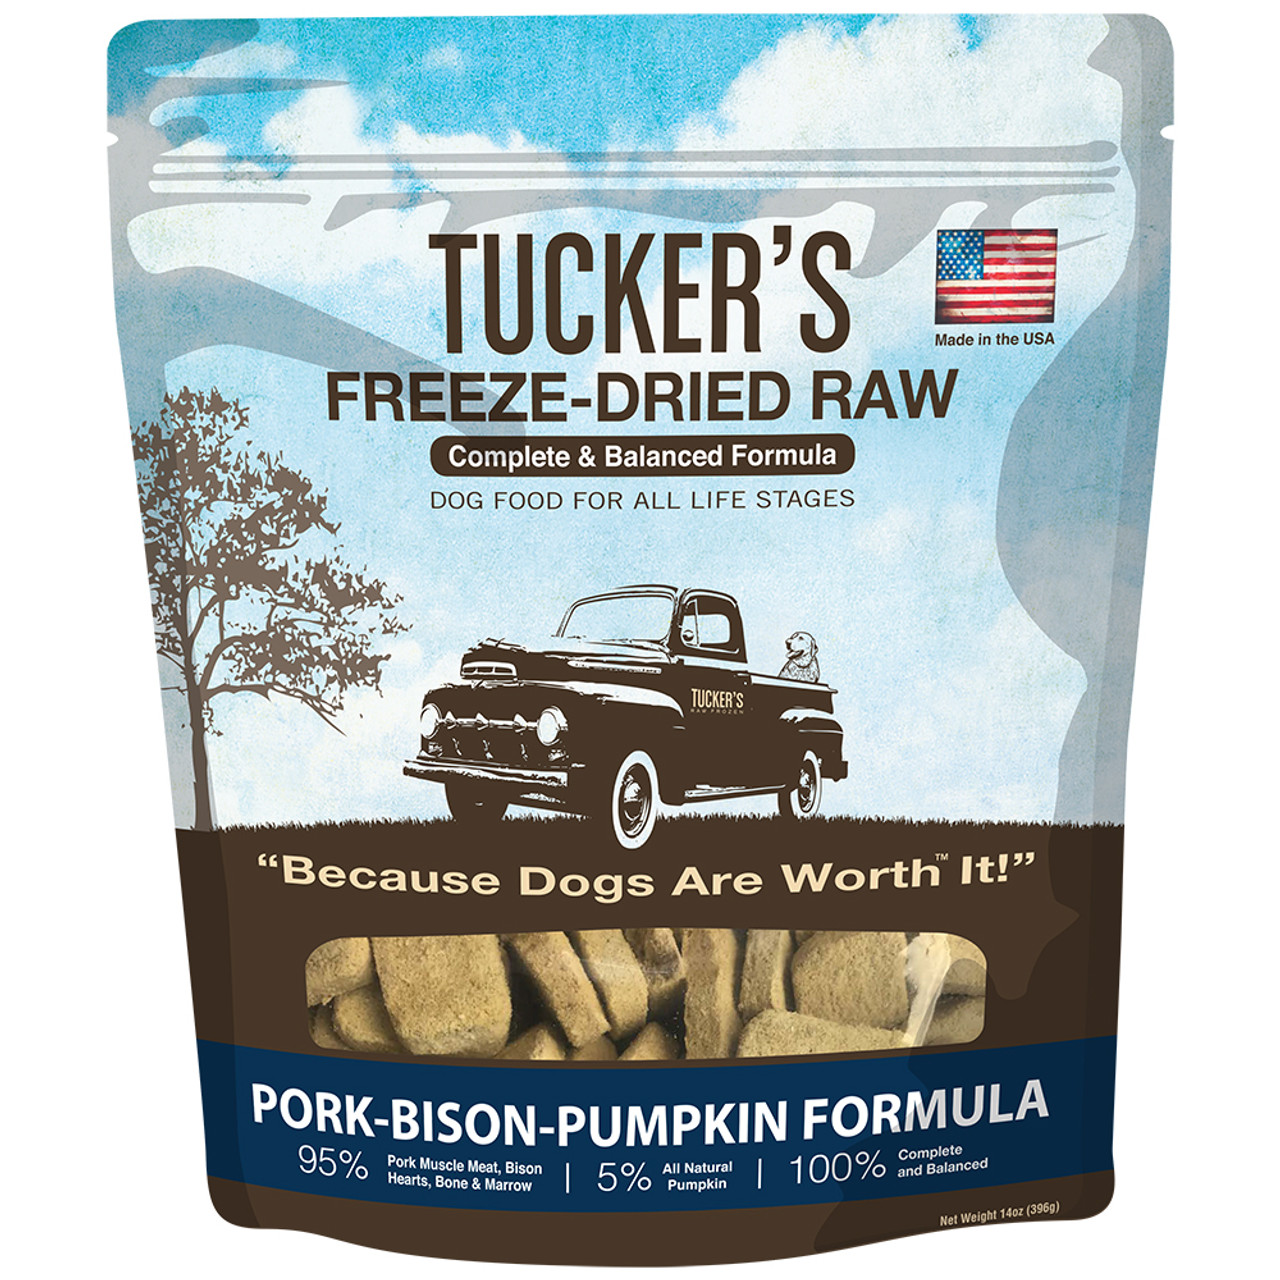 Tucker's Freeze-Dried Raw Pork-Bison-Pumpkin Formula Dog Food